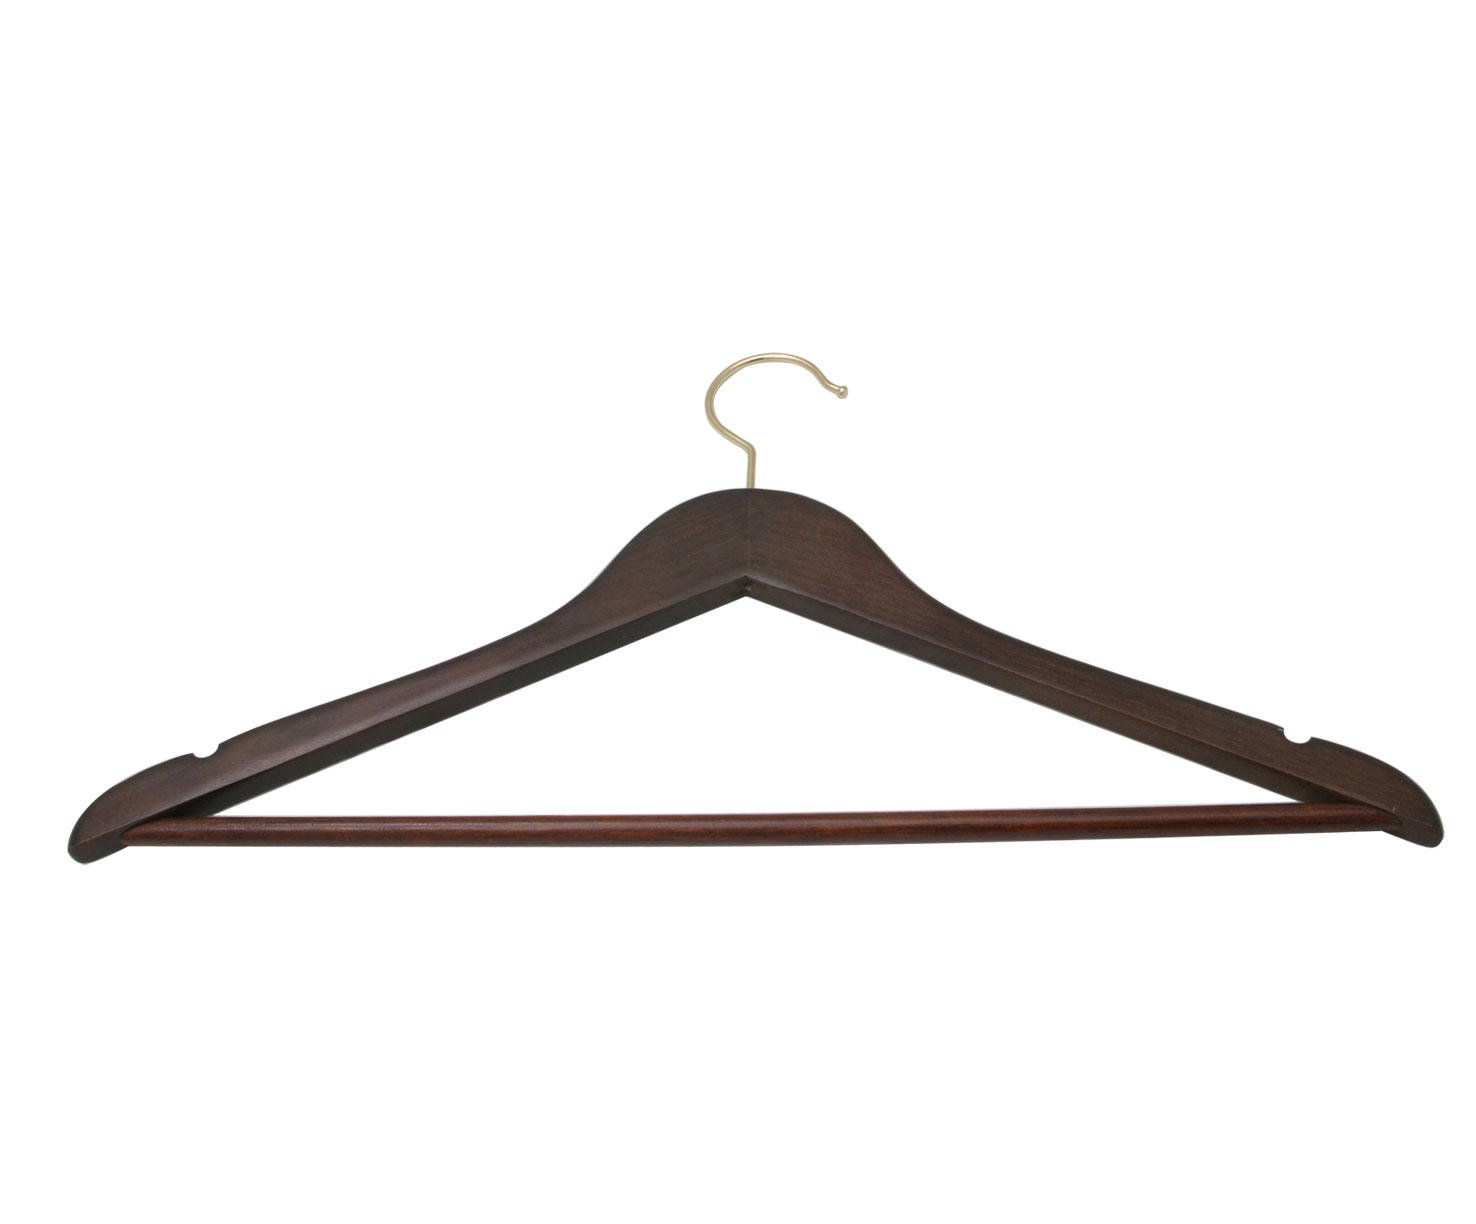 WALNUT WOOD TROUSER HANGER W/BRASS HOOK